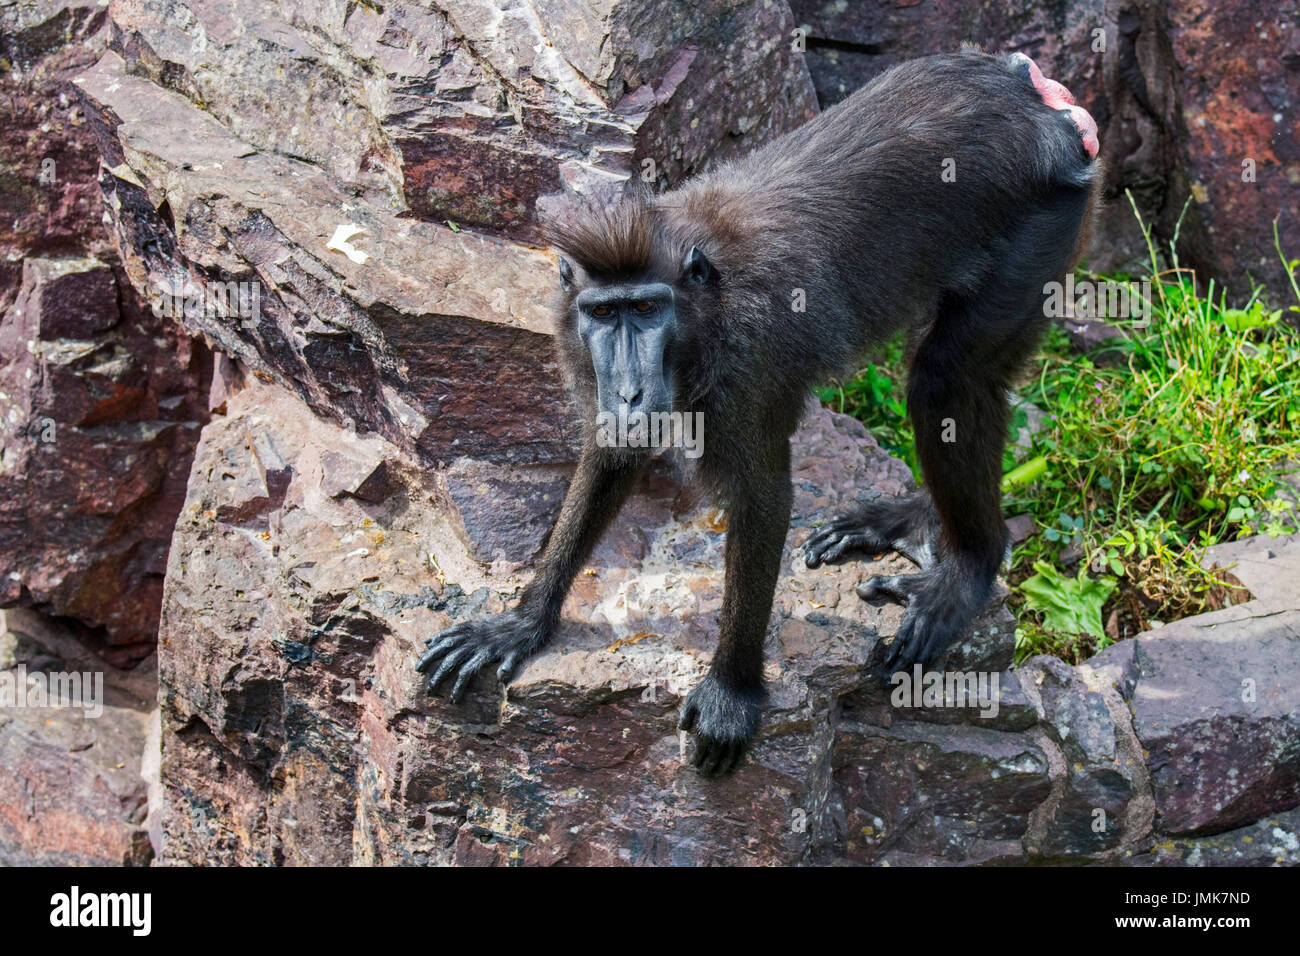 Celebes crested macaque / crested black macaque / Sulawesi crested macaque / black ape (Macaca nigra) female, native to Sulawesi - Stock Image